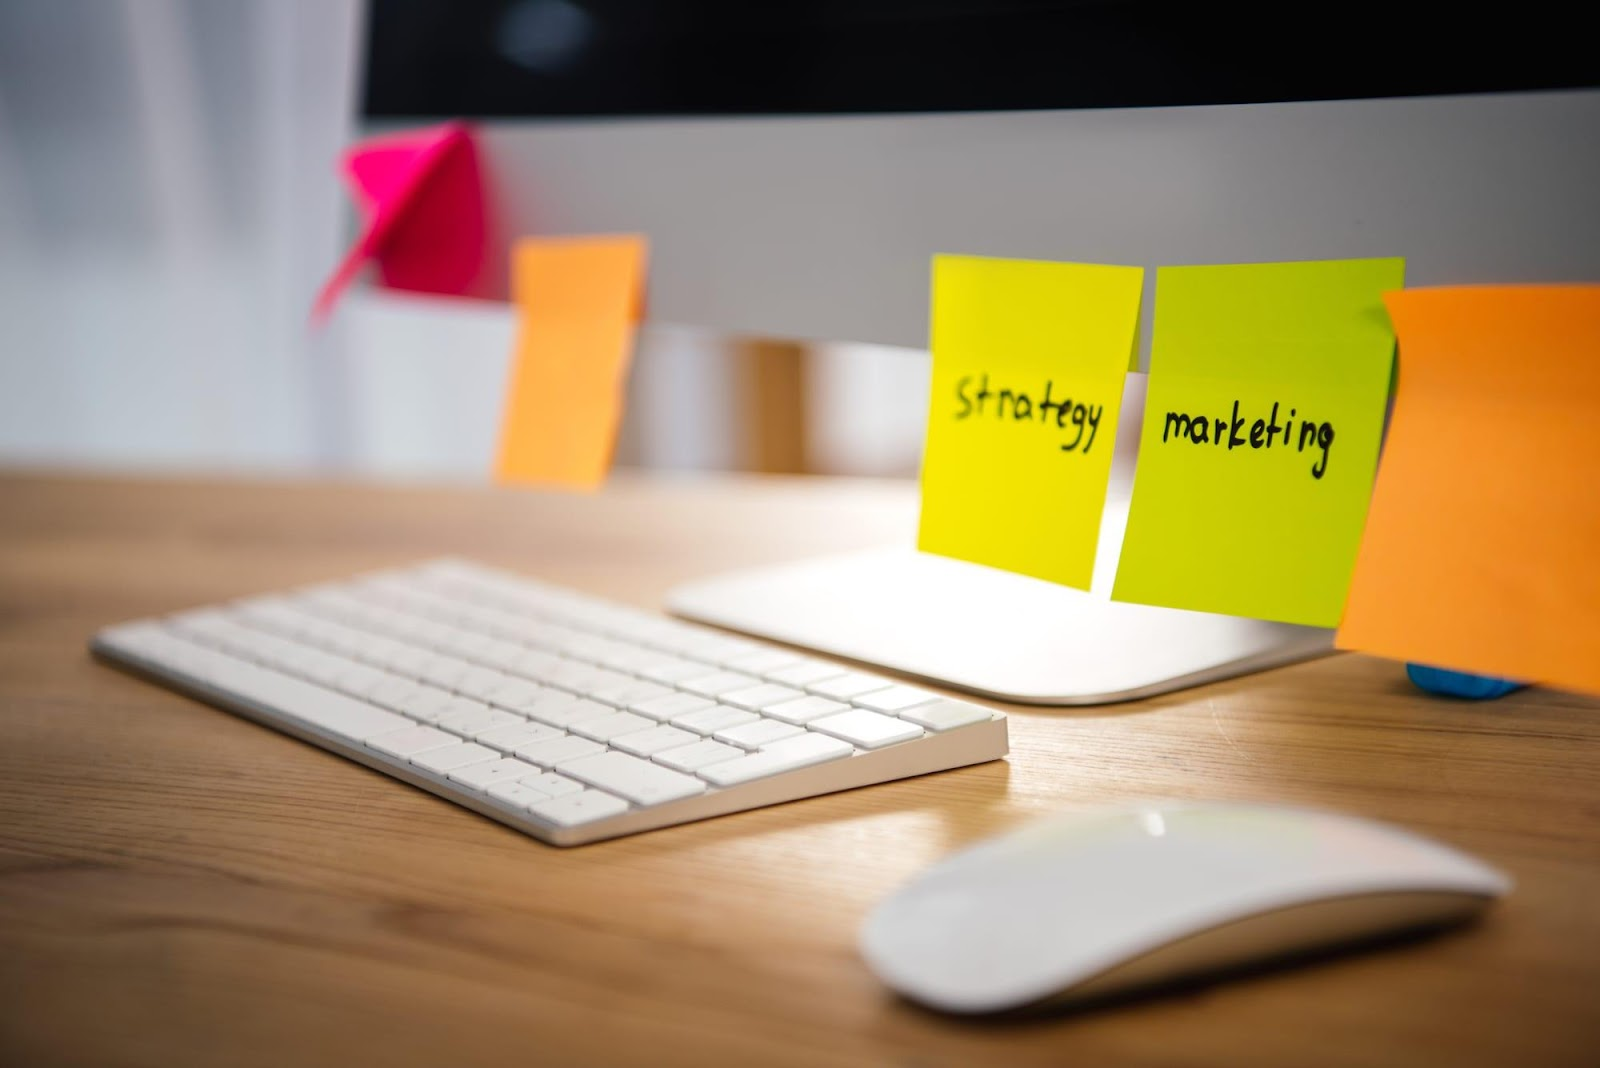 10 Sure-Fire Ways to Boost Your Company's Online Visibility - Tweak Your Biz